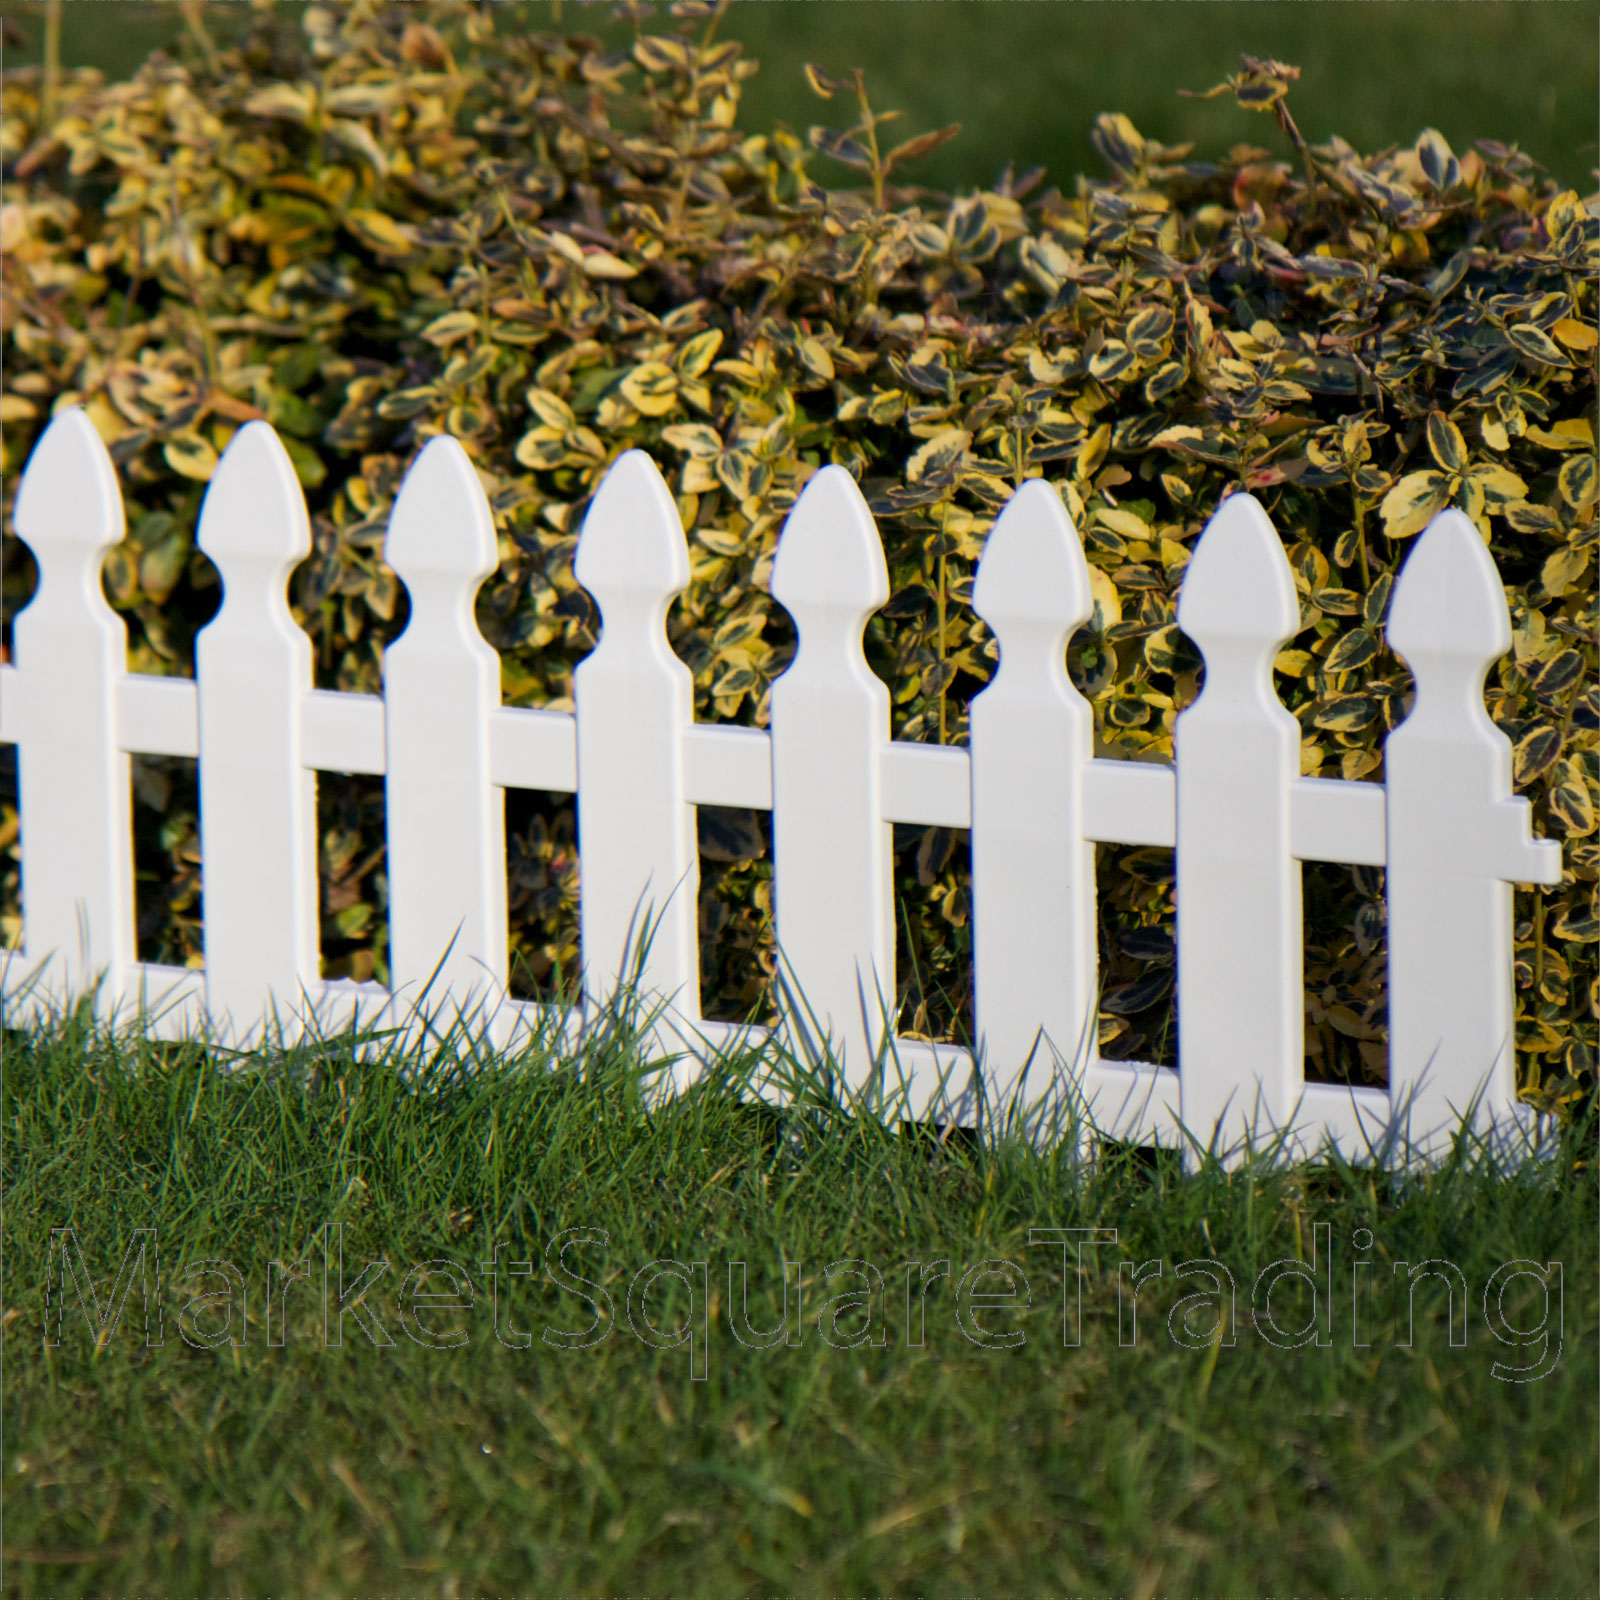 PLASTIC-FENCING-LAWN-GRASS-BORDER-PATH-EDGING-FANCY-SMALL-MINI-PICKET-FLEXIBLE